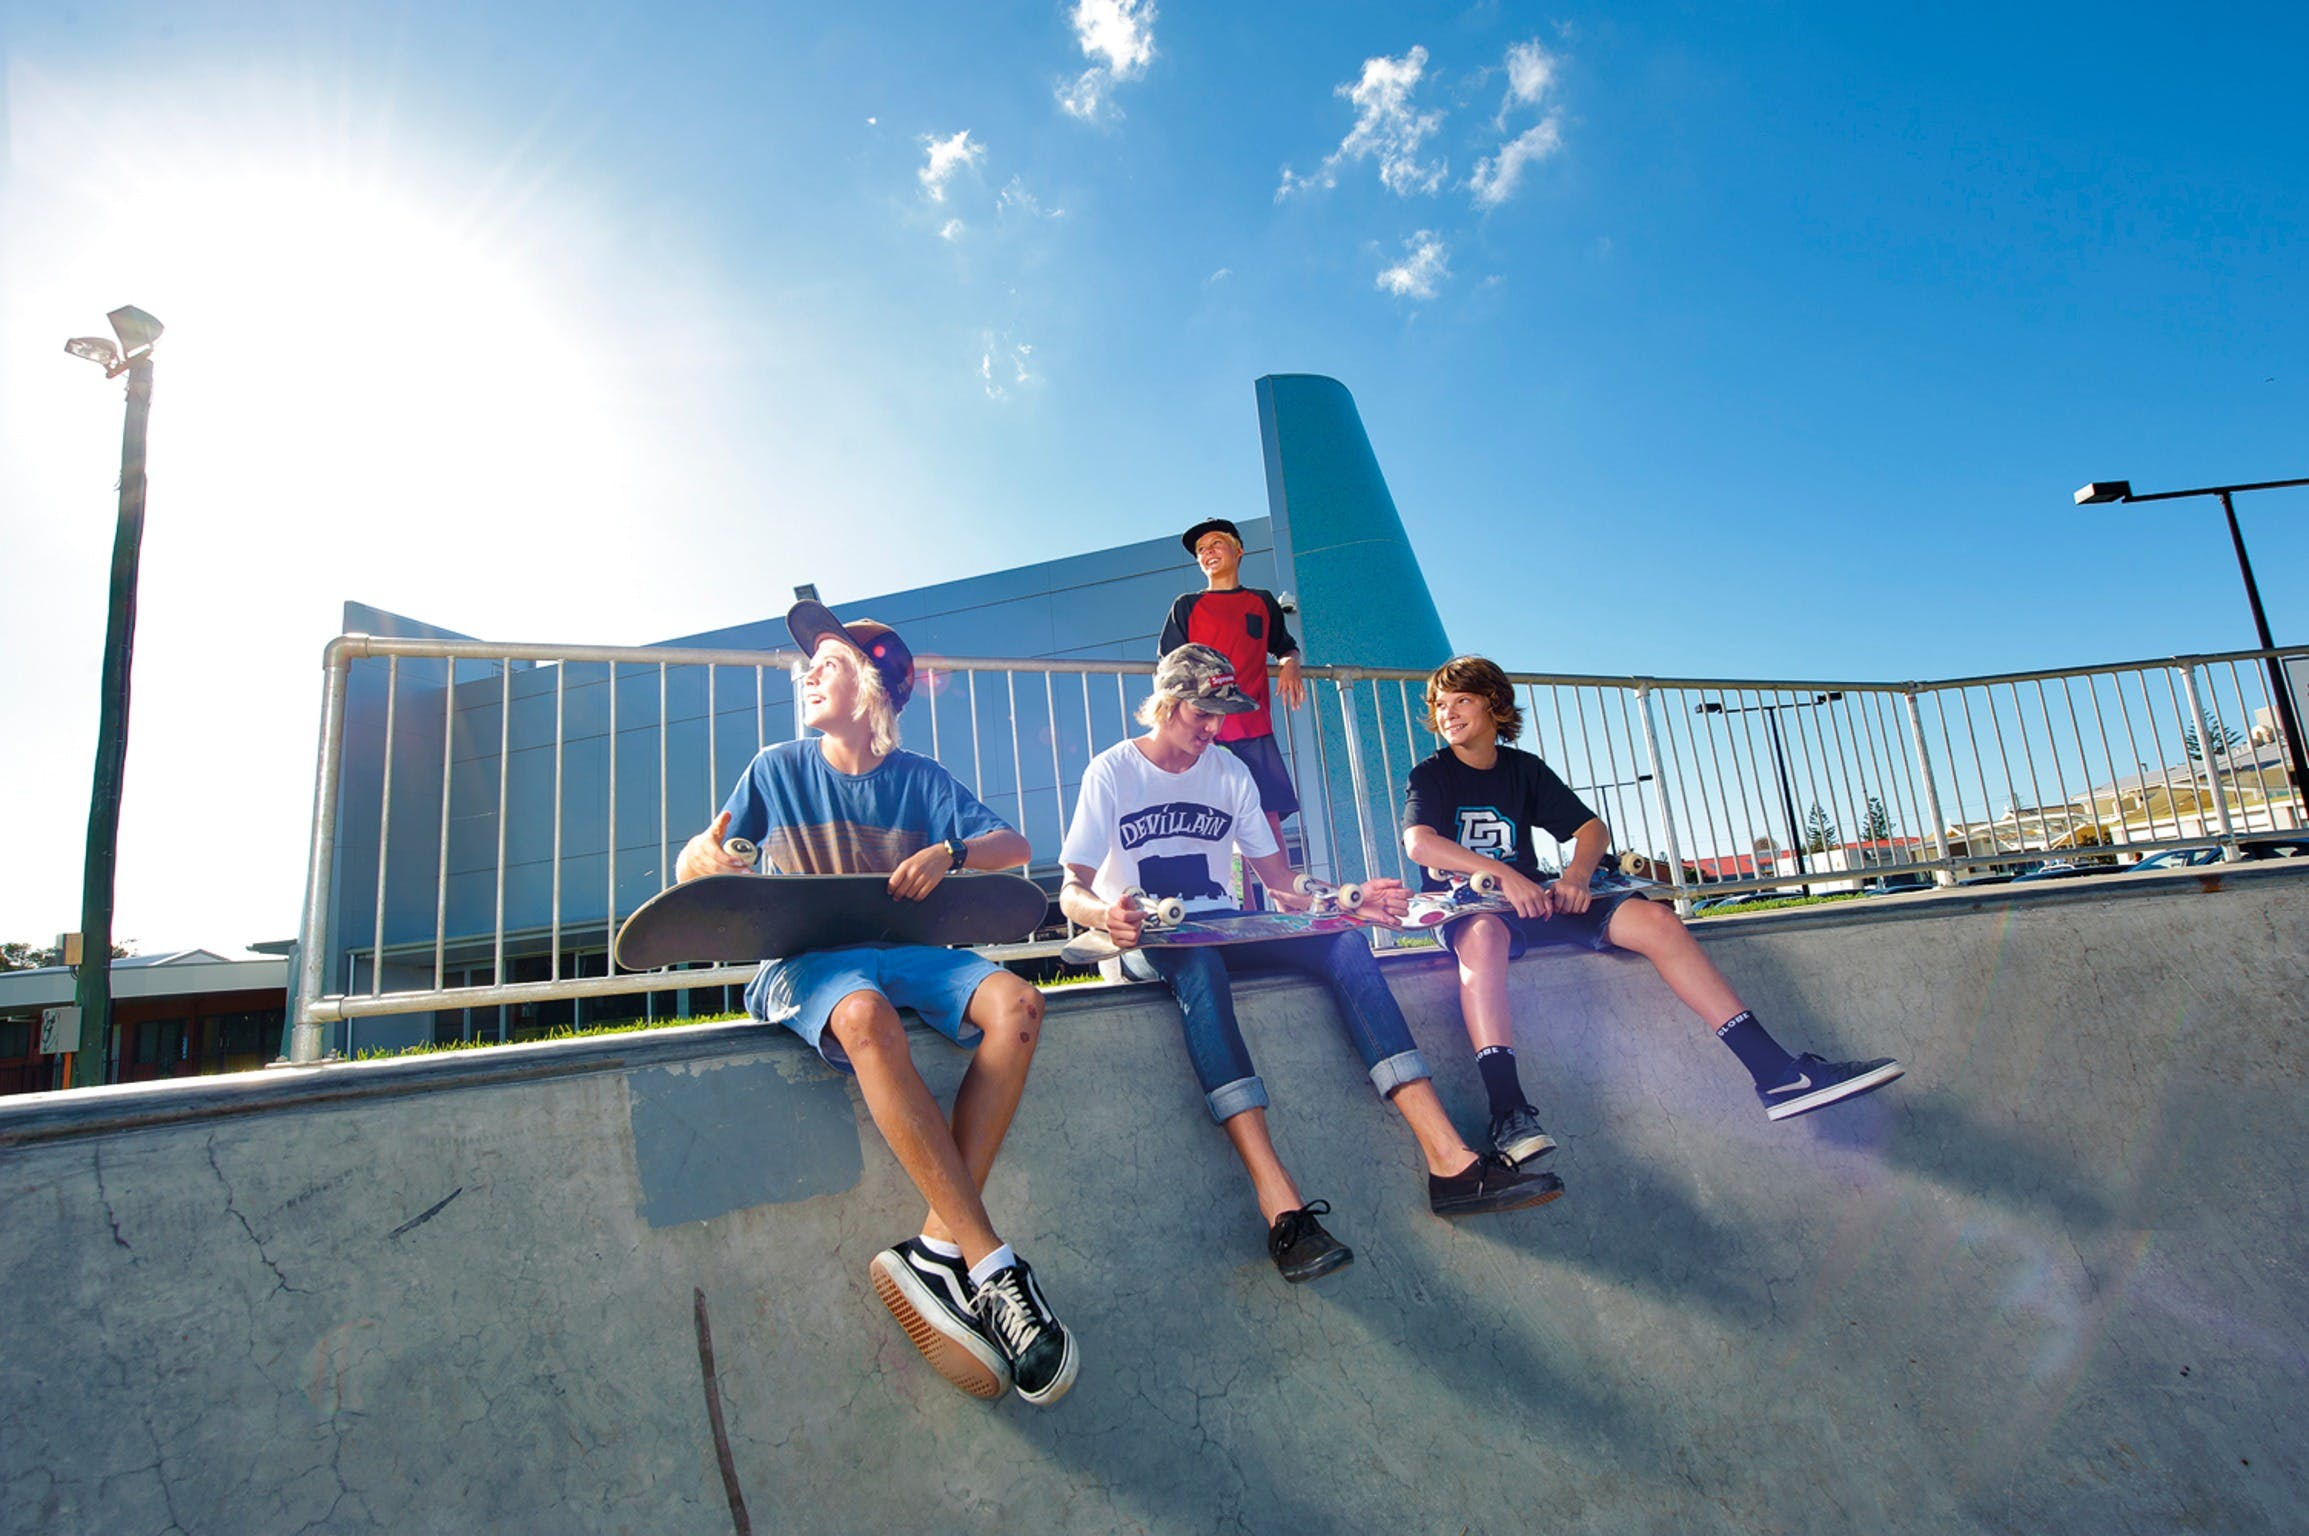 Fair Go Skate Comp - ACT Tourism